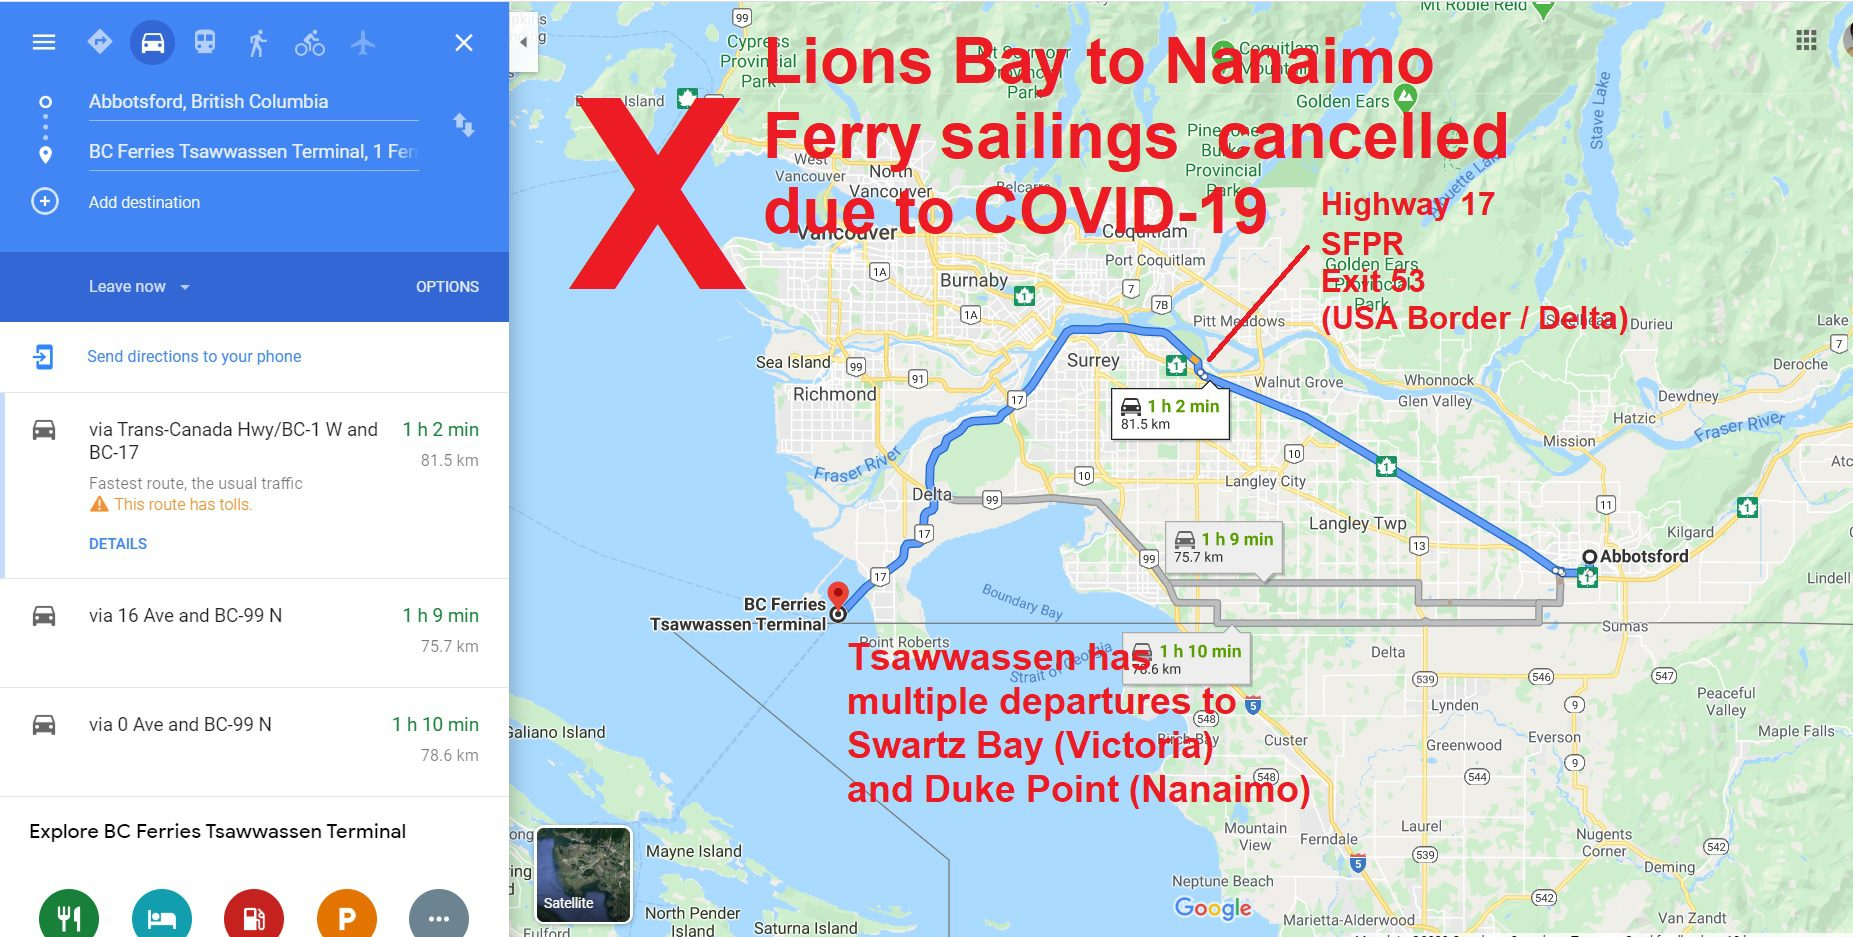 BC Ferries - Lions Bay-Nanaimo Sailings Cancelled